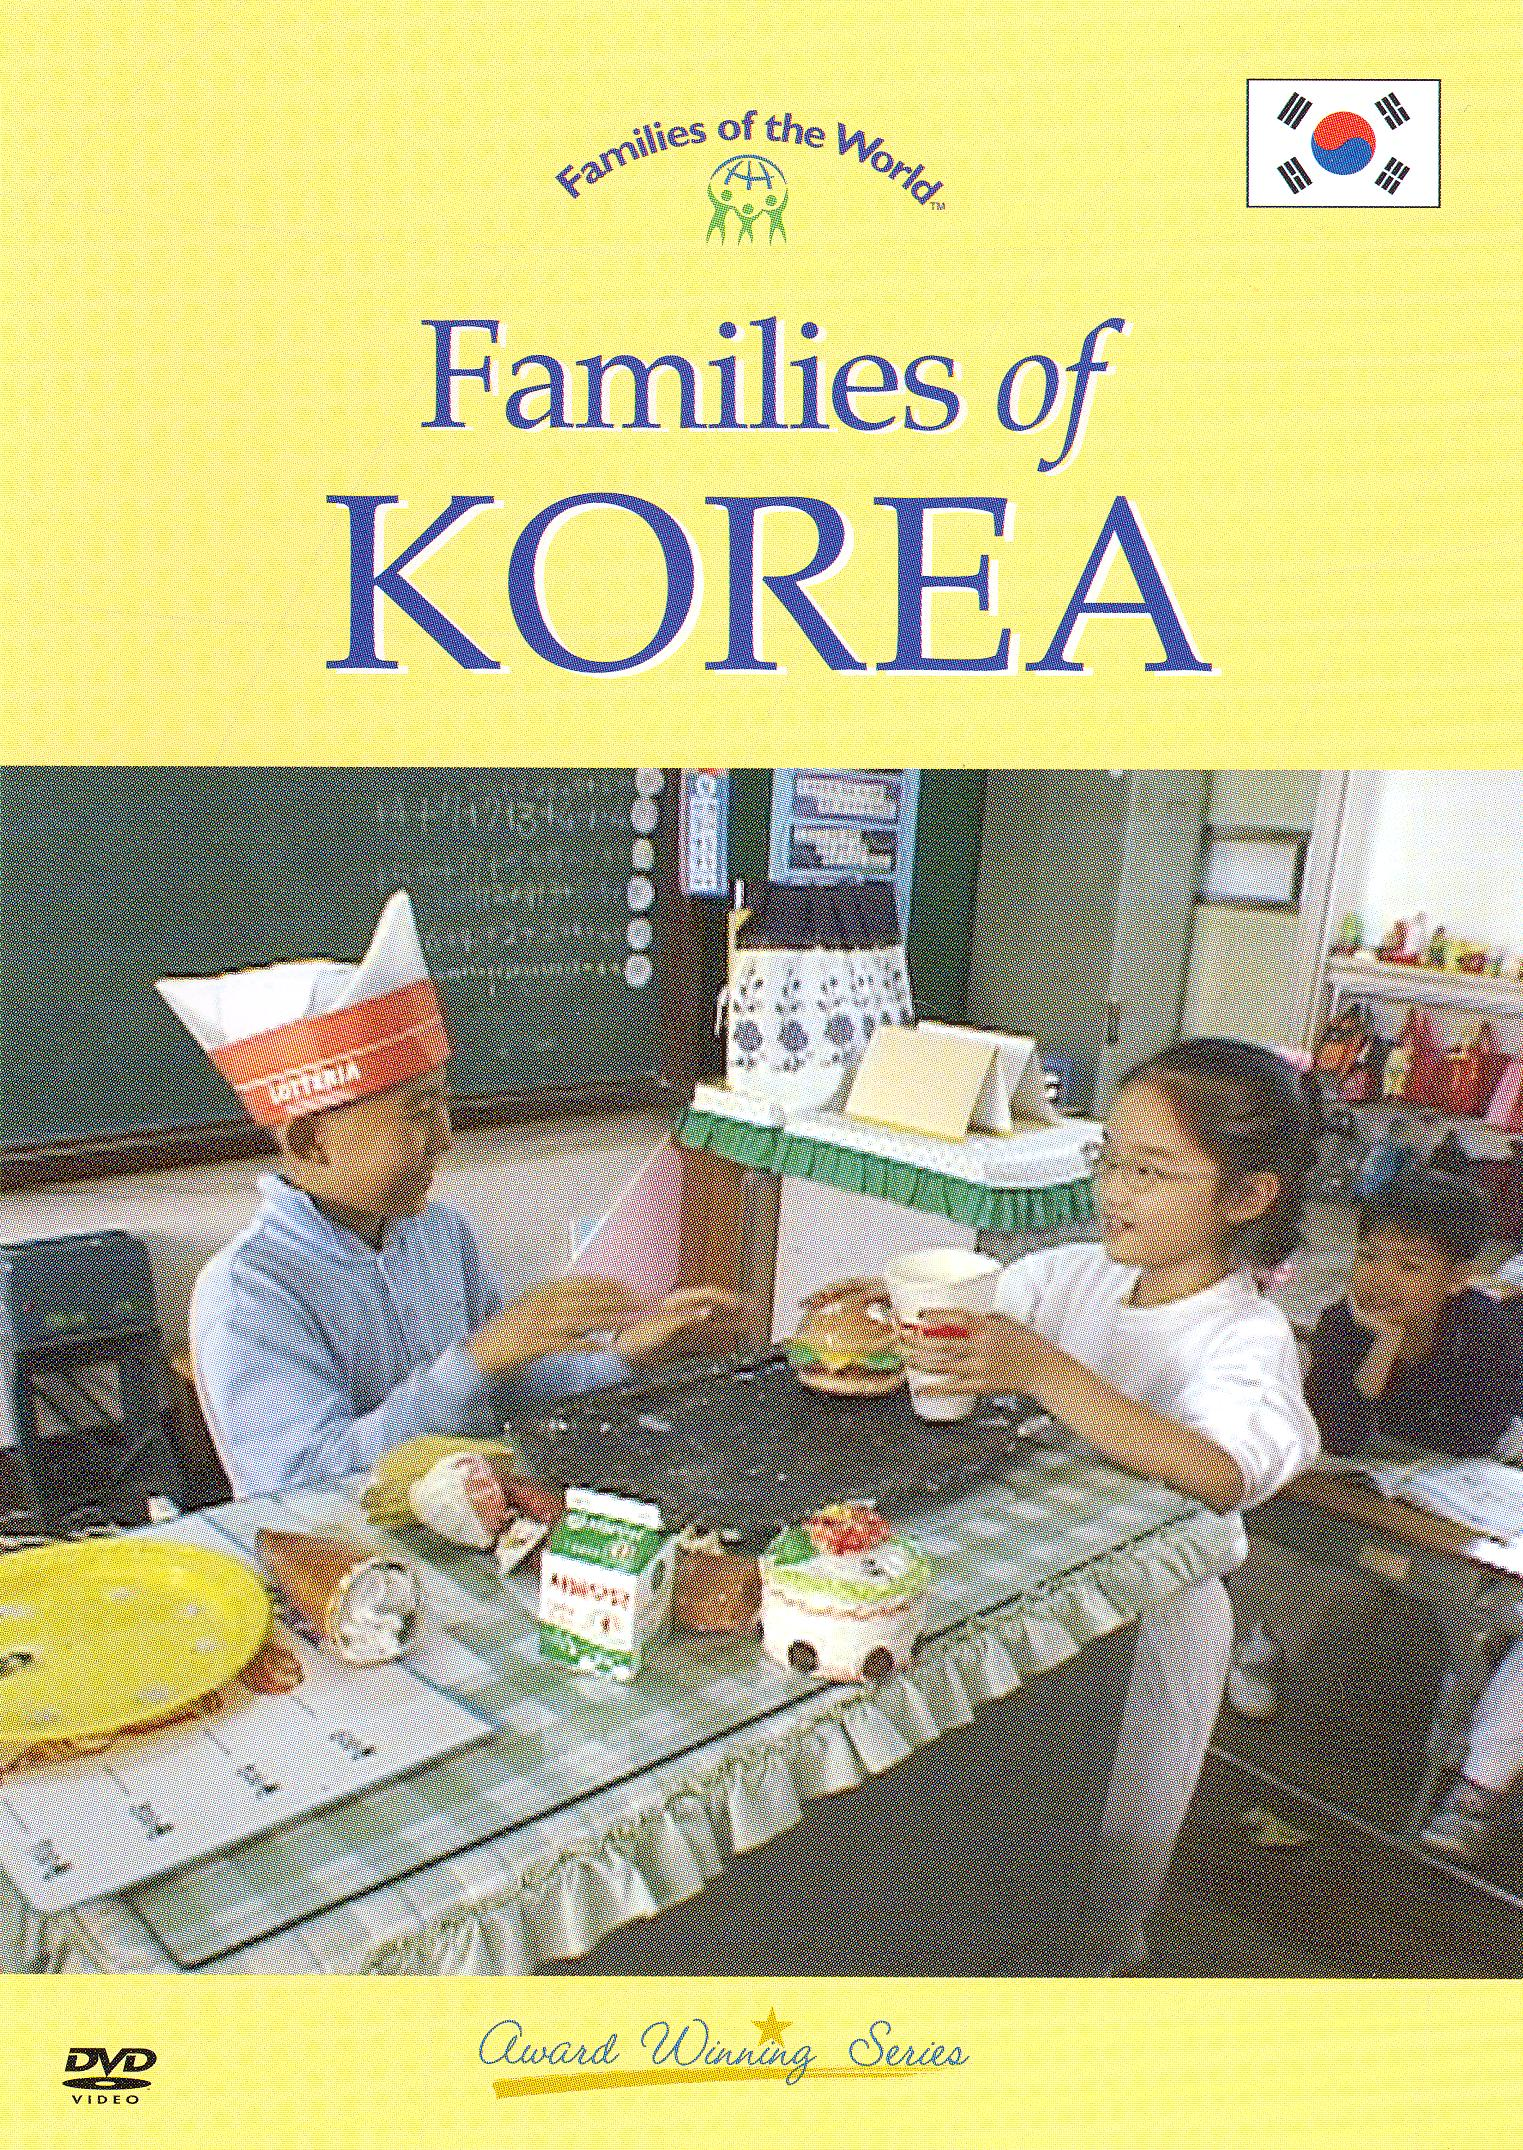 Families of the World: Families of Korea